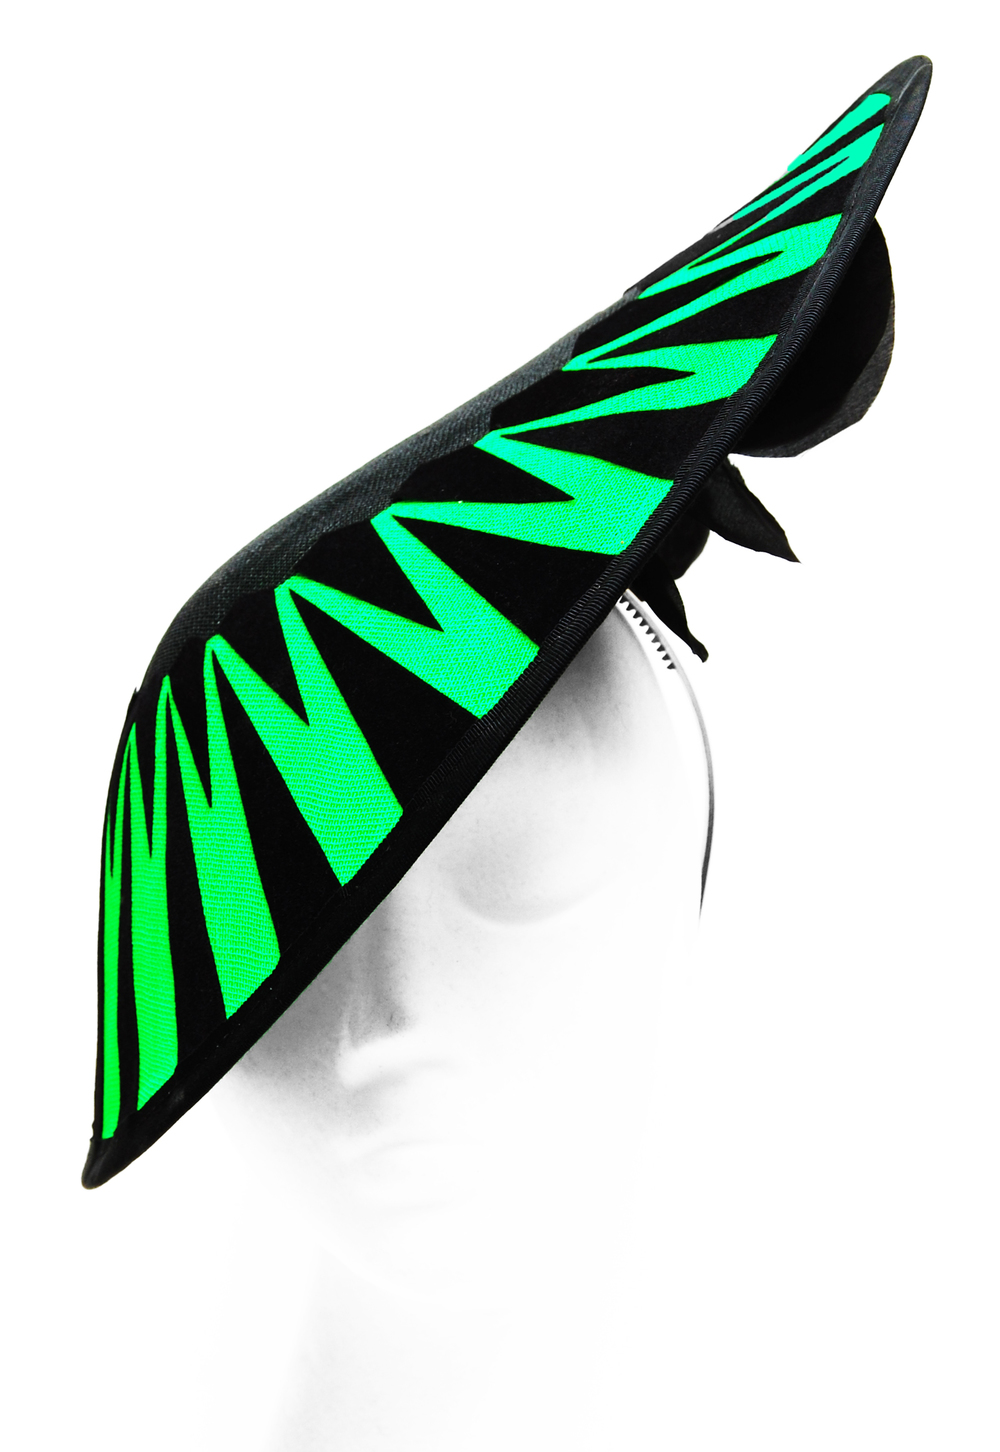 Neon Green Black Arrows .jpg